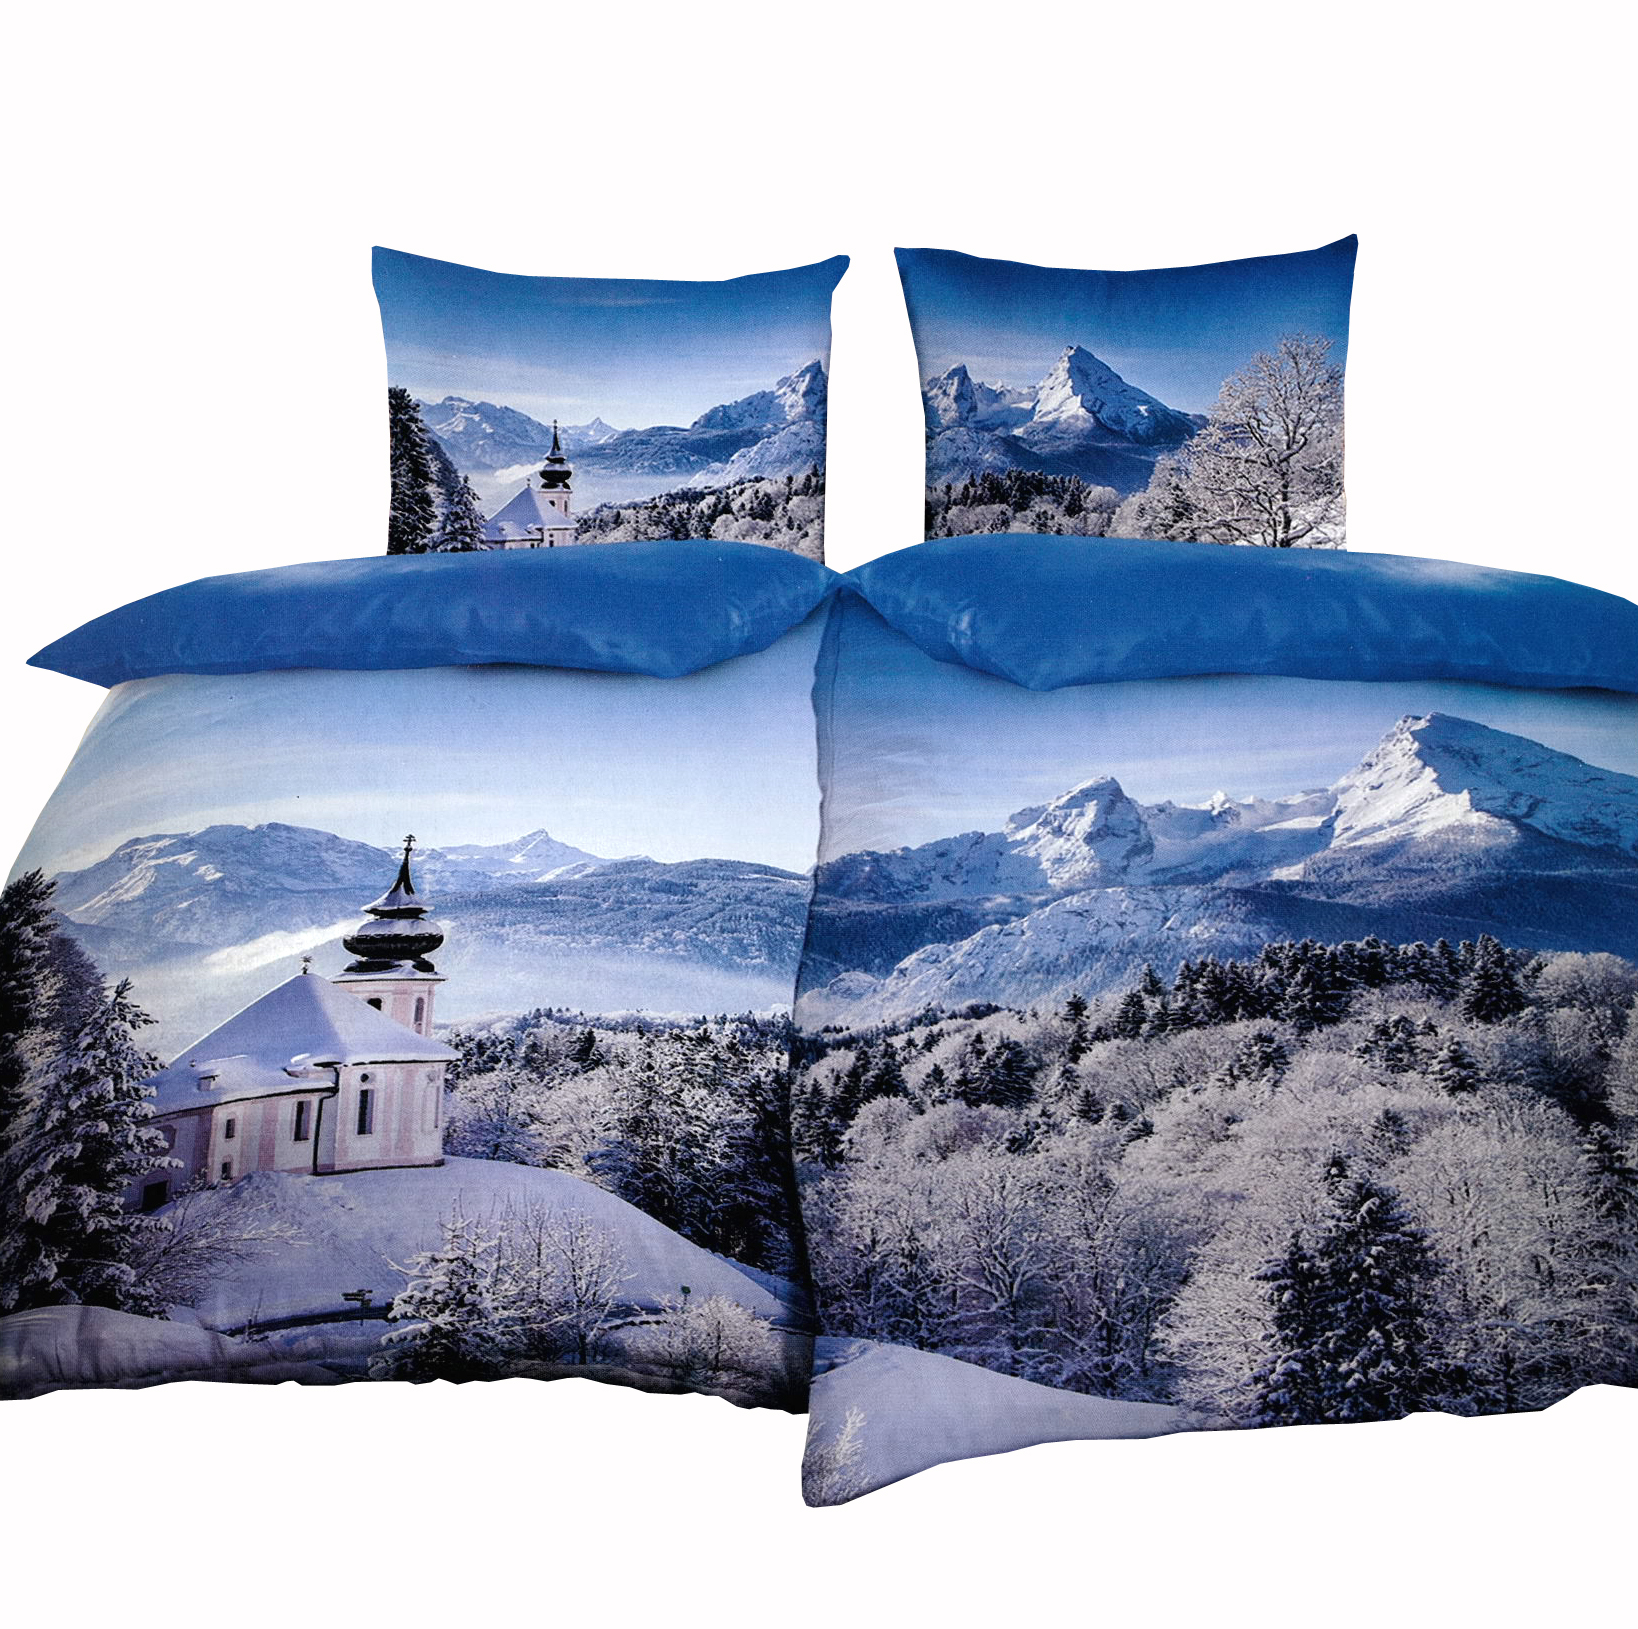 5 tlg partnerbettw sche thermofleece 135x200 cm schneelandschaft kirche berge mit bettlaken 180. Black Bedroom Furniture Sets. Home Design Ideas